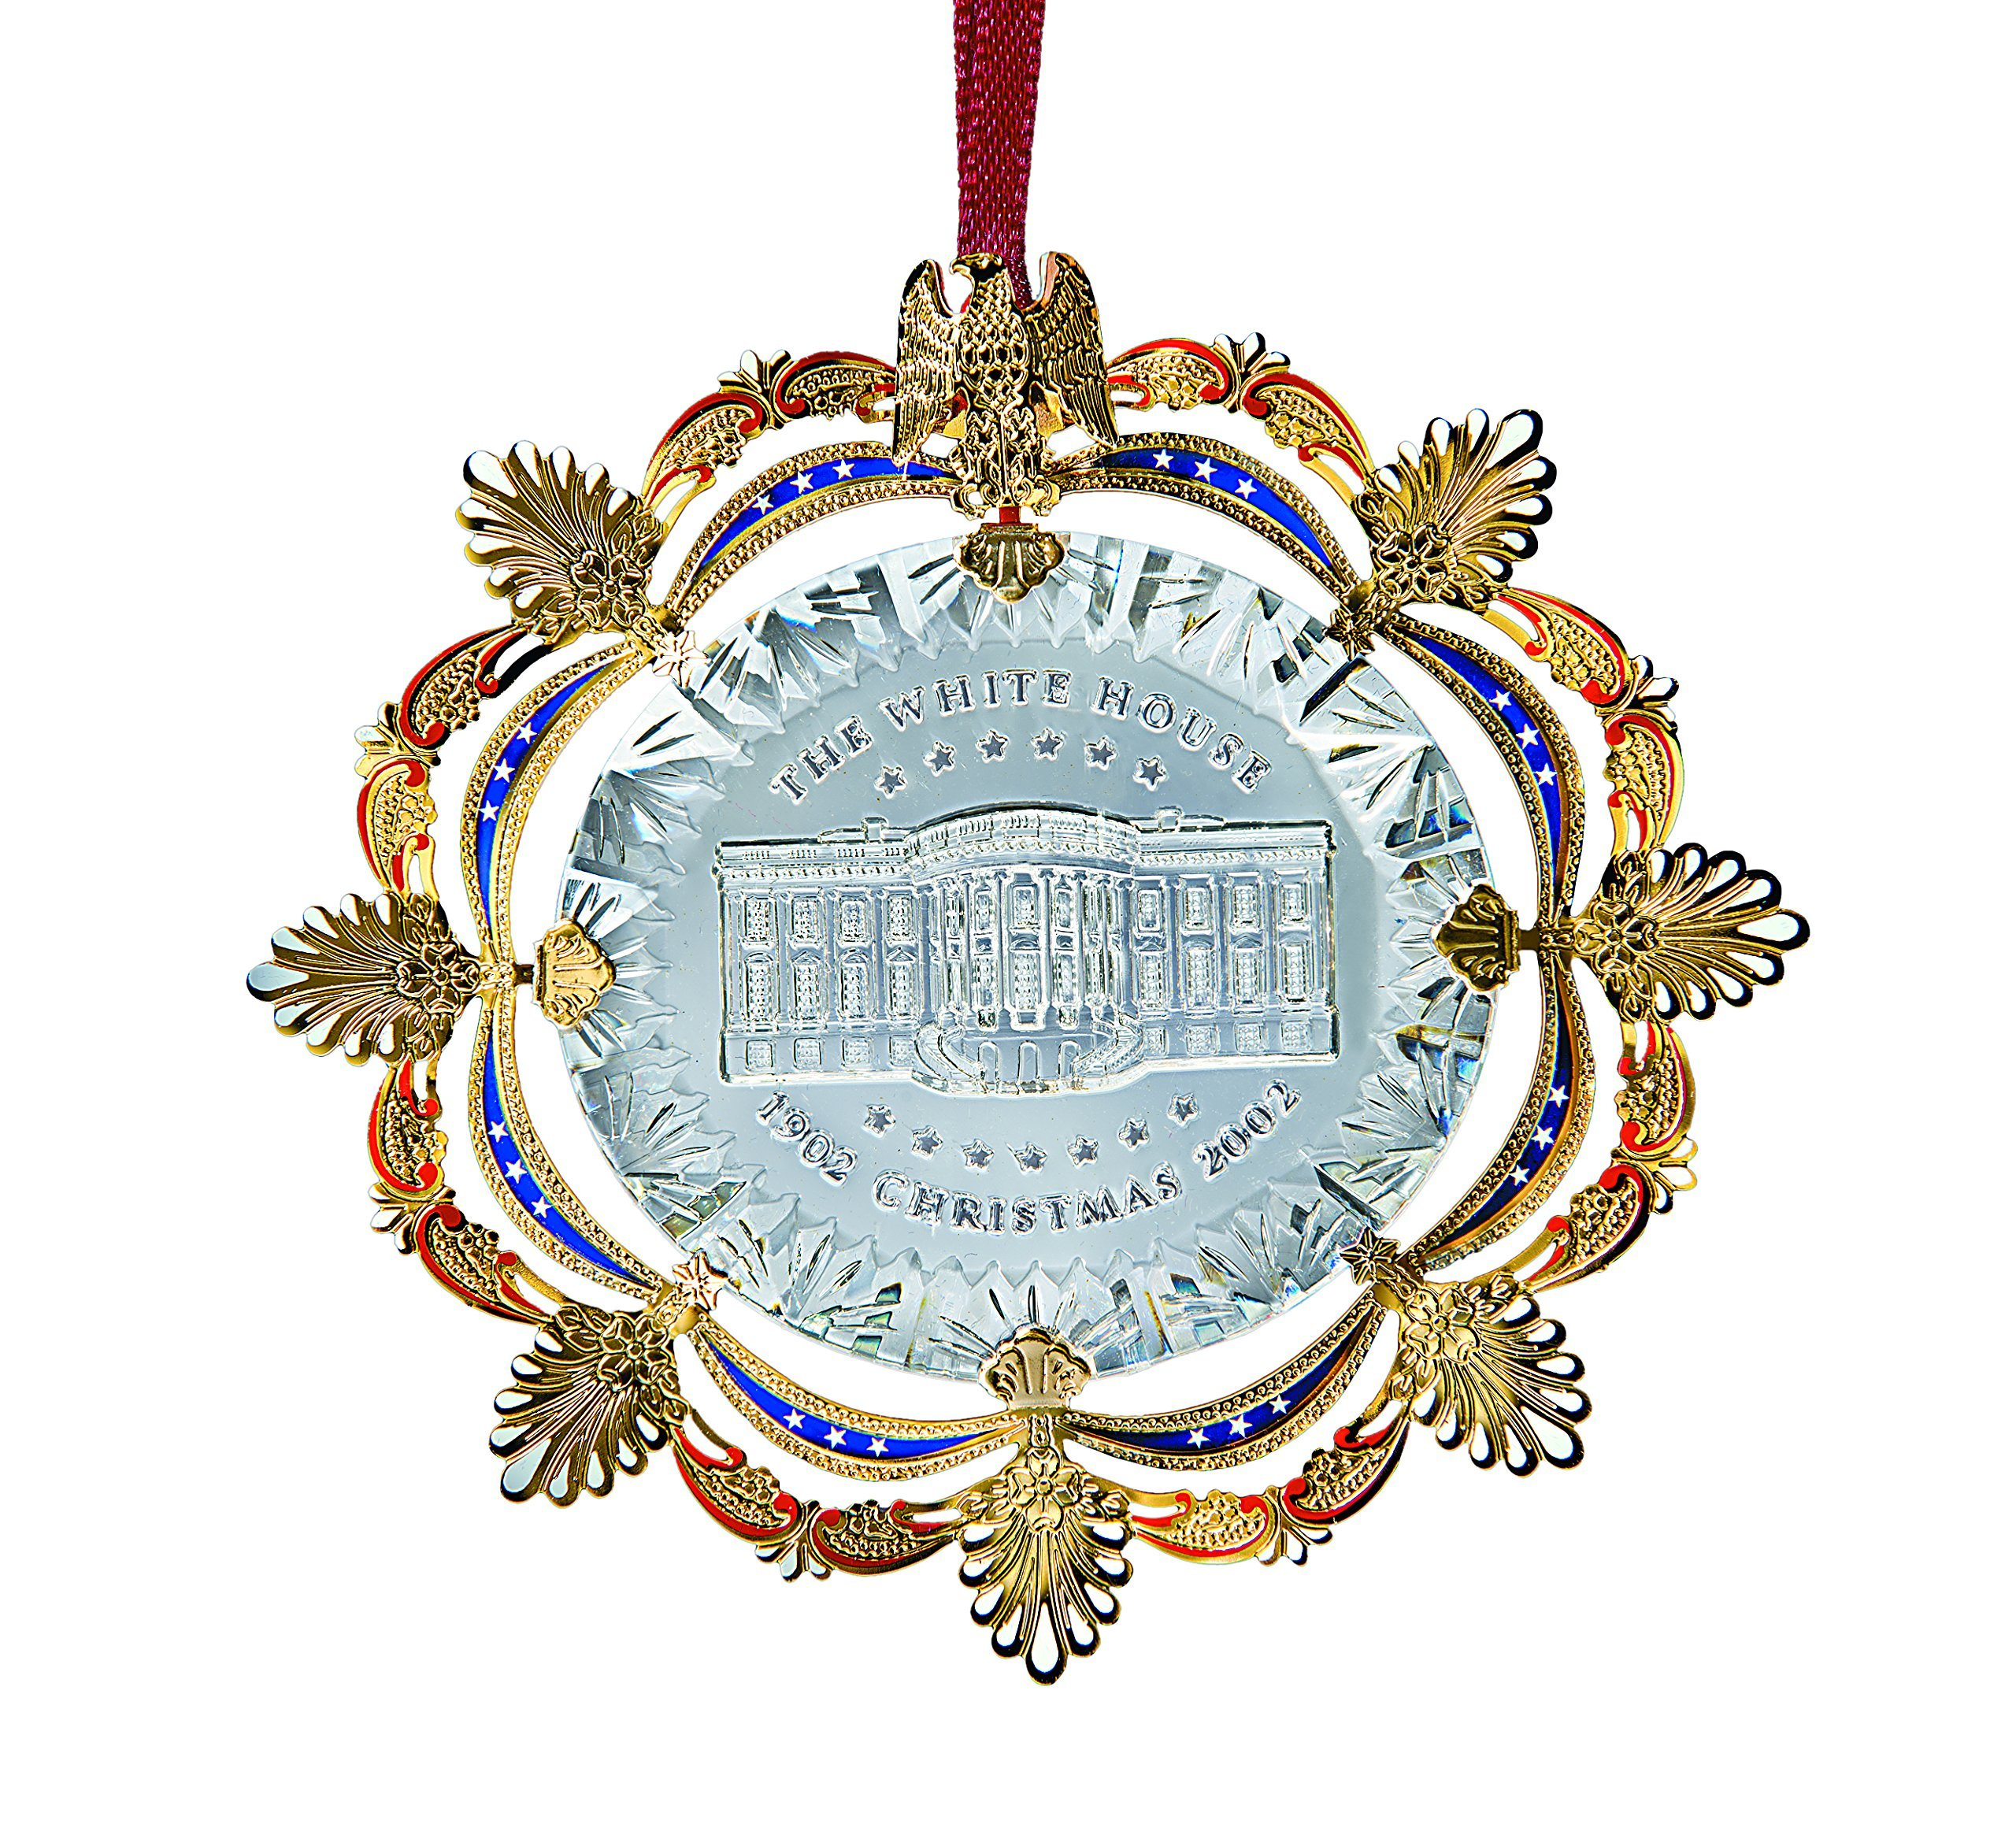 2002 White House Christmas Ornament, The East Room In 1902